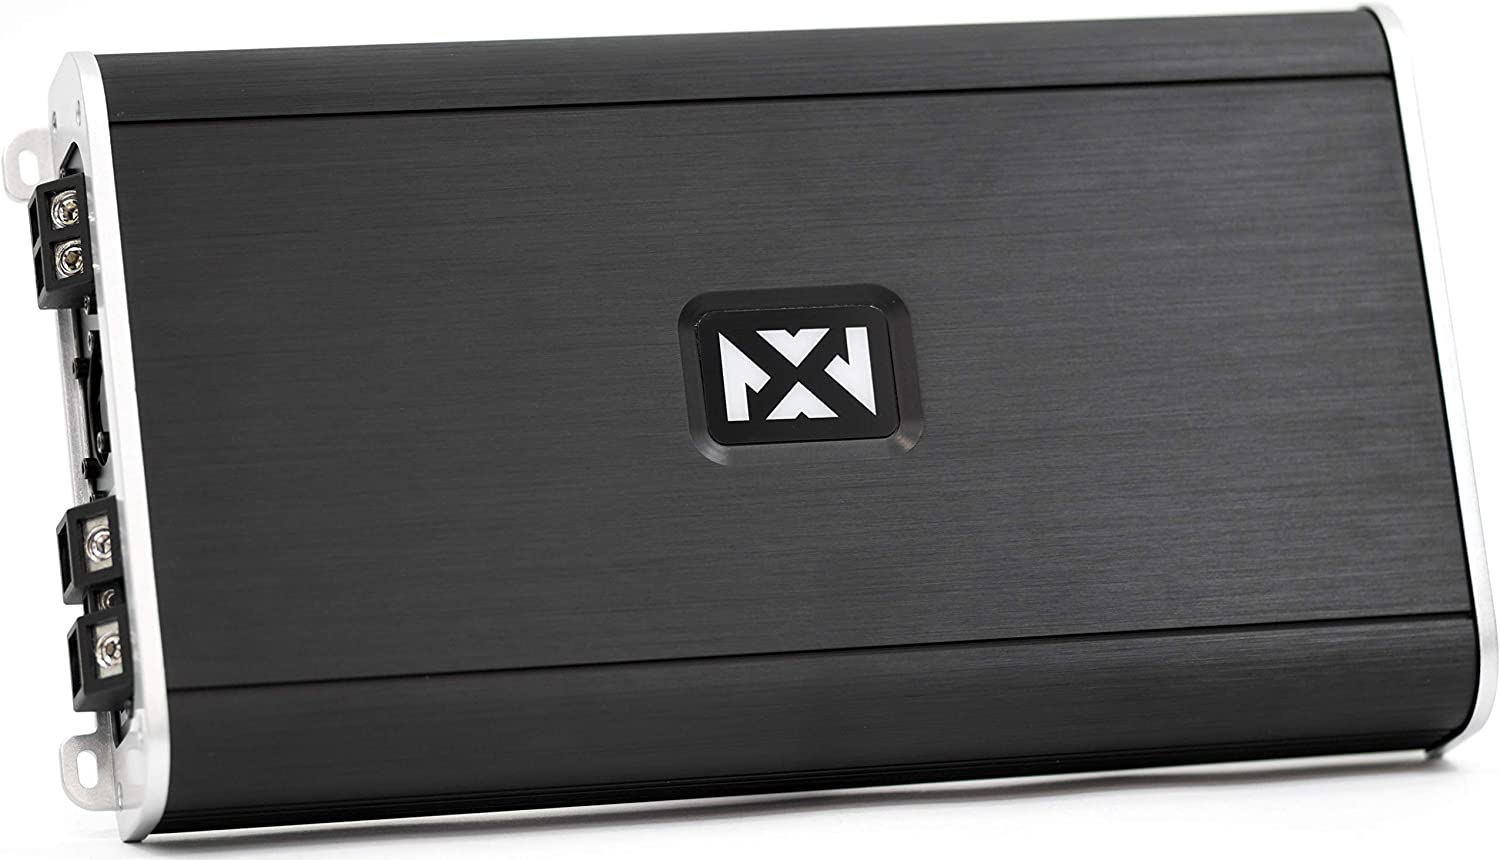 NVX VAD27001-2700W RMS Class D Monoblock Car//Marine//Powersports Amplifier with Bass Remote Marine Certified